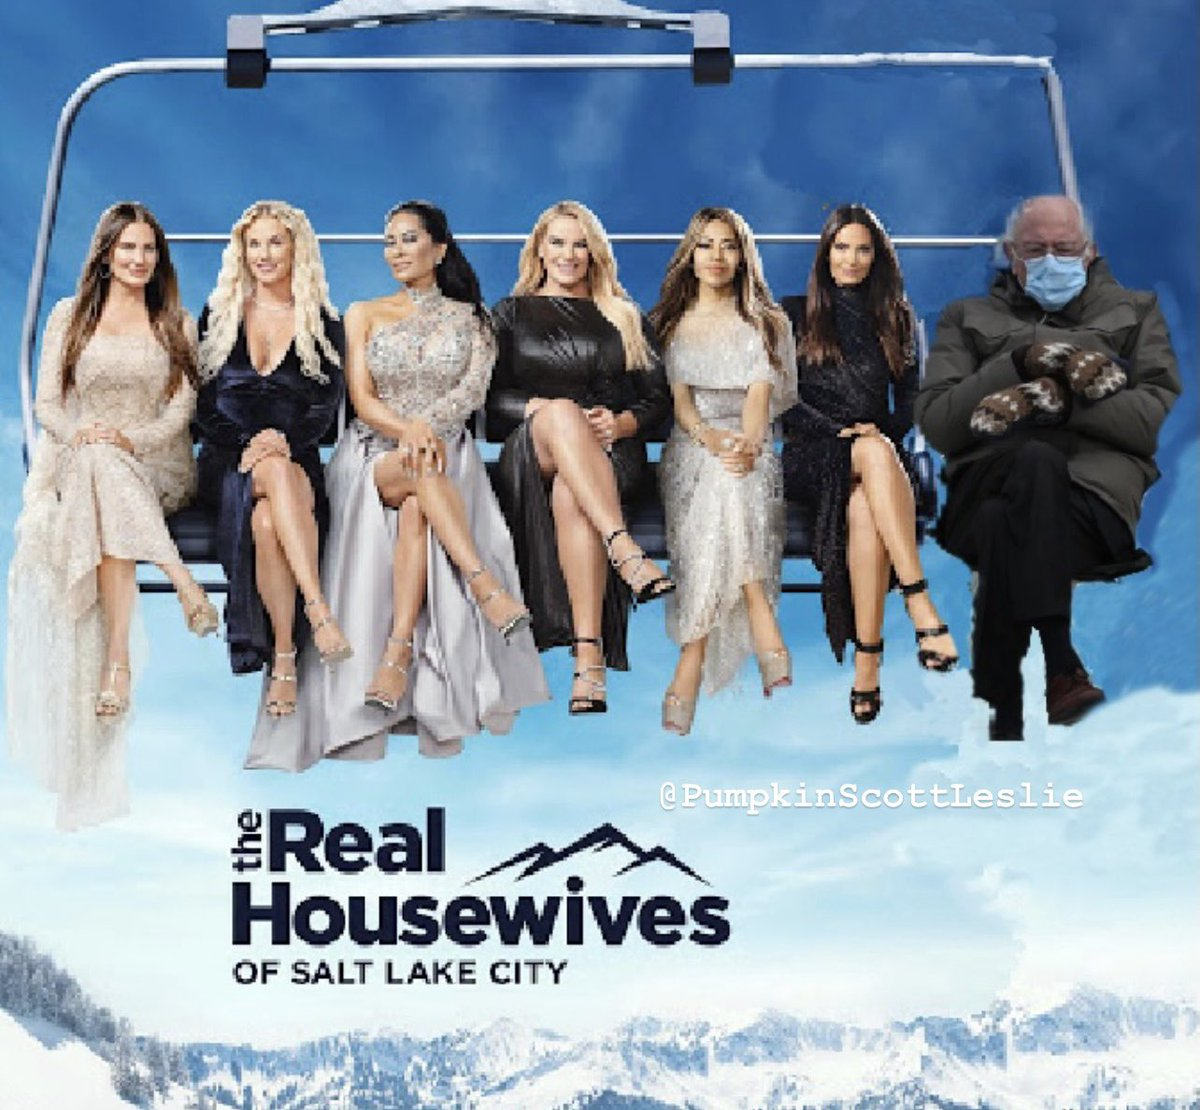 New Addition to Real Housewives of Salt Lake City...  #RHOSLC #BravoTV